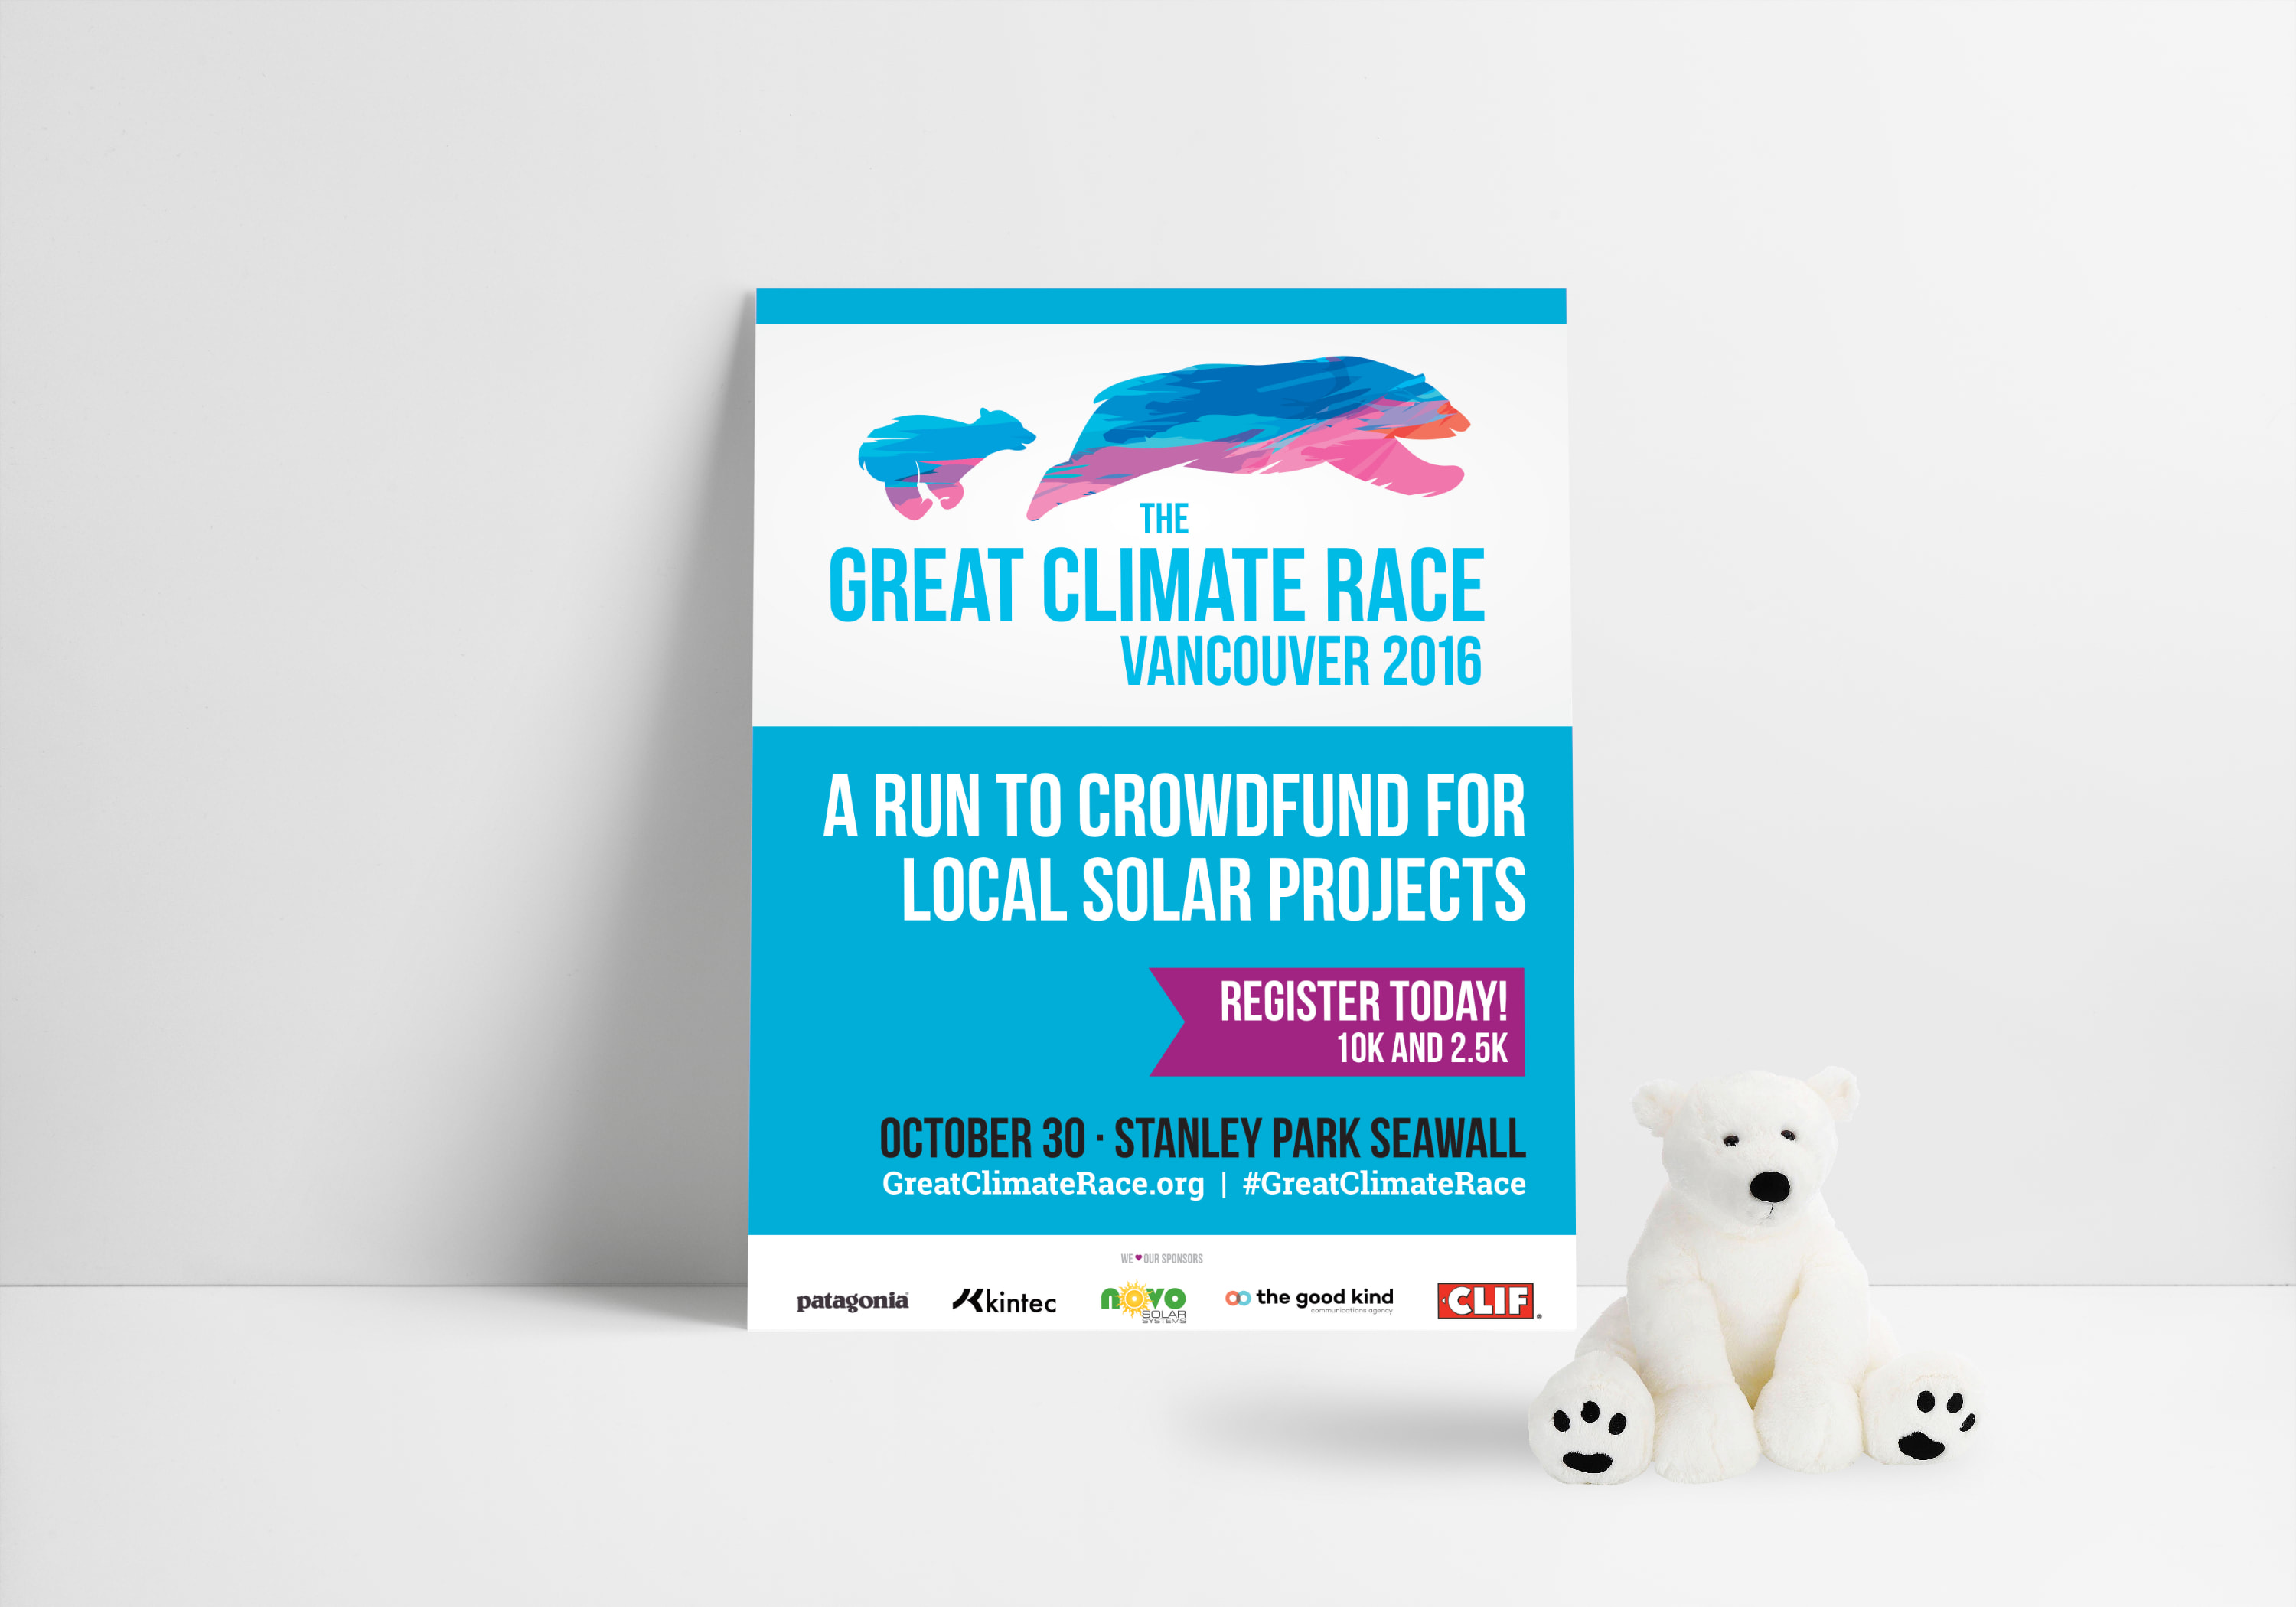 After just 2 years and over $50,000 raised for clean energy projects, the Great Climate Race is one of Vancouver's most enjoyed race events. The race pulls in a diverse crowd of hardcore runners as well as families with kids, racing to raise money to fund solar energy projects. A unique event in its own right.